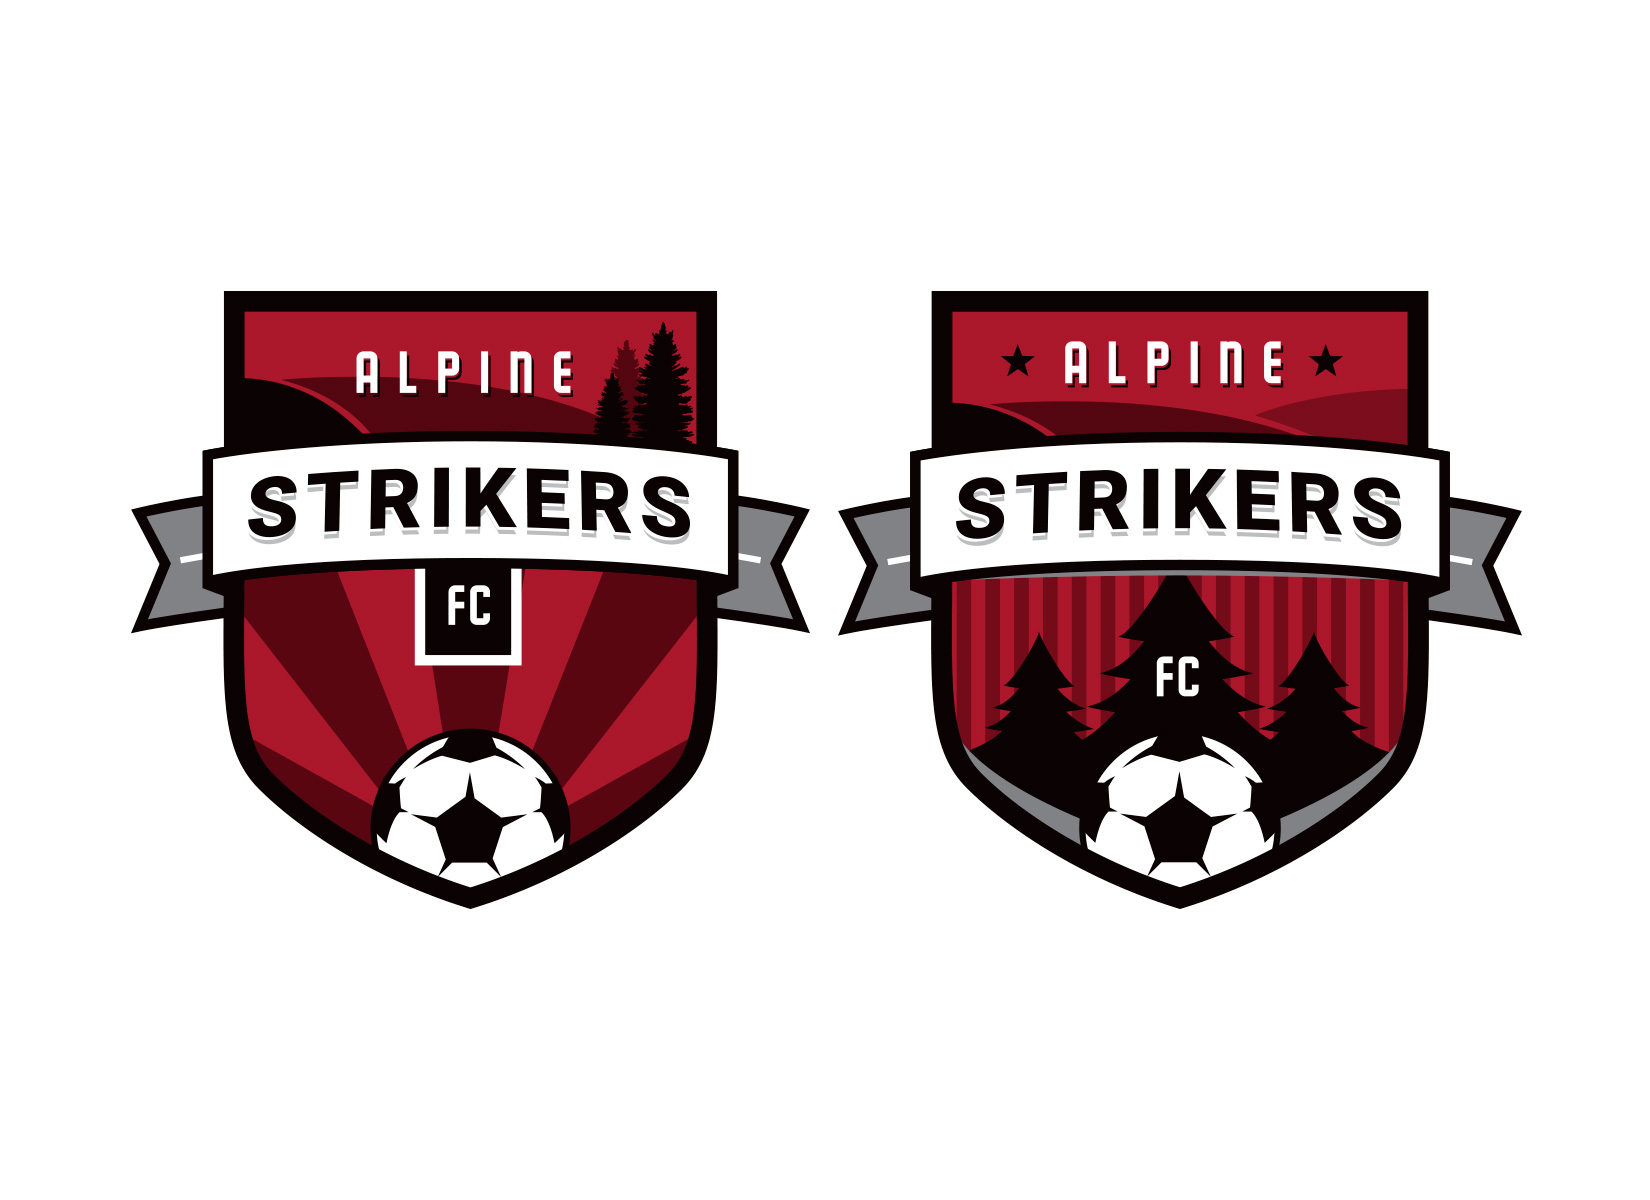 Alpine Strikers soccer badge design option